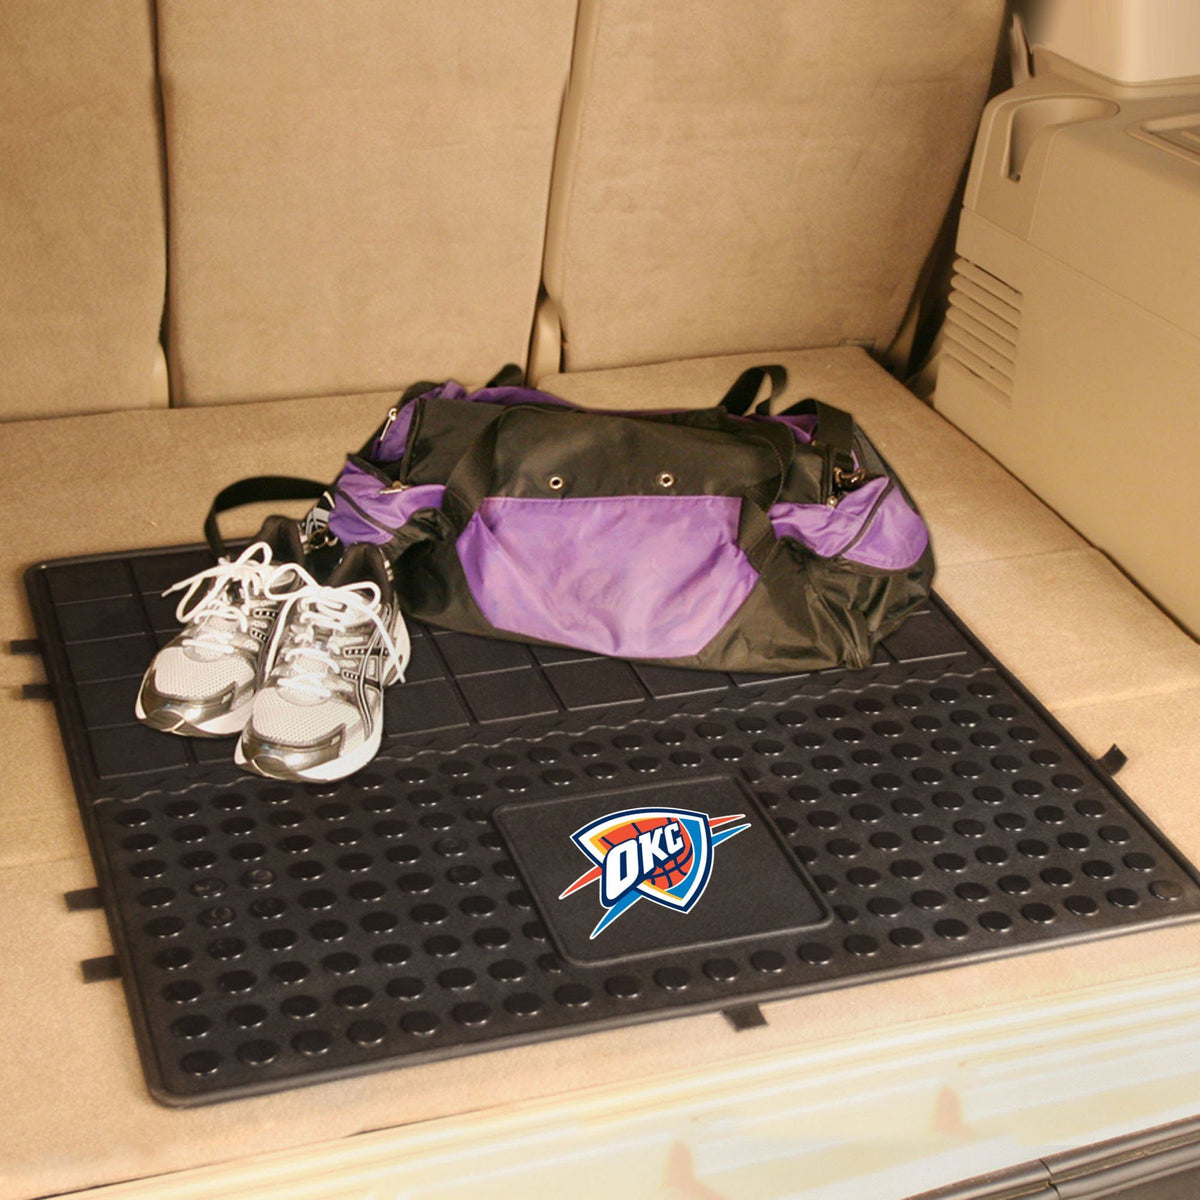 NBA - Heavy Duty Vinyl Cargo Mat NBA Mats, Trunk Mats, Heavy Duty Vinyl Cargo Mat, NBA, Auto Fan Mats Oklahoma City Thunder